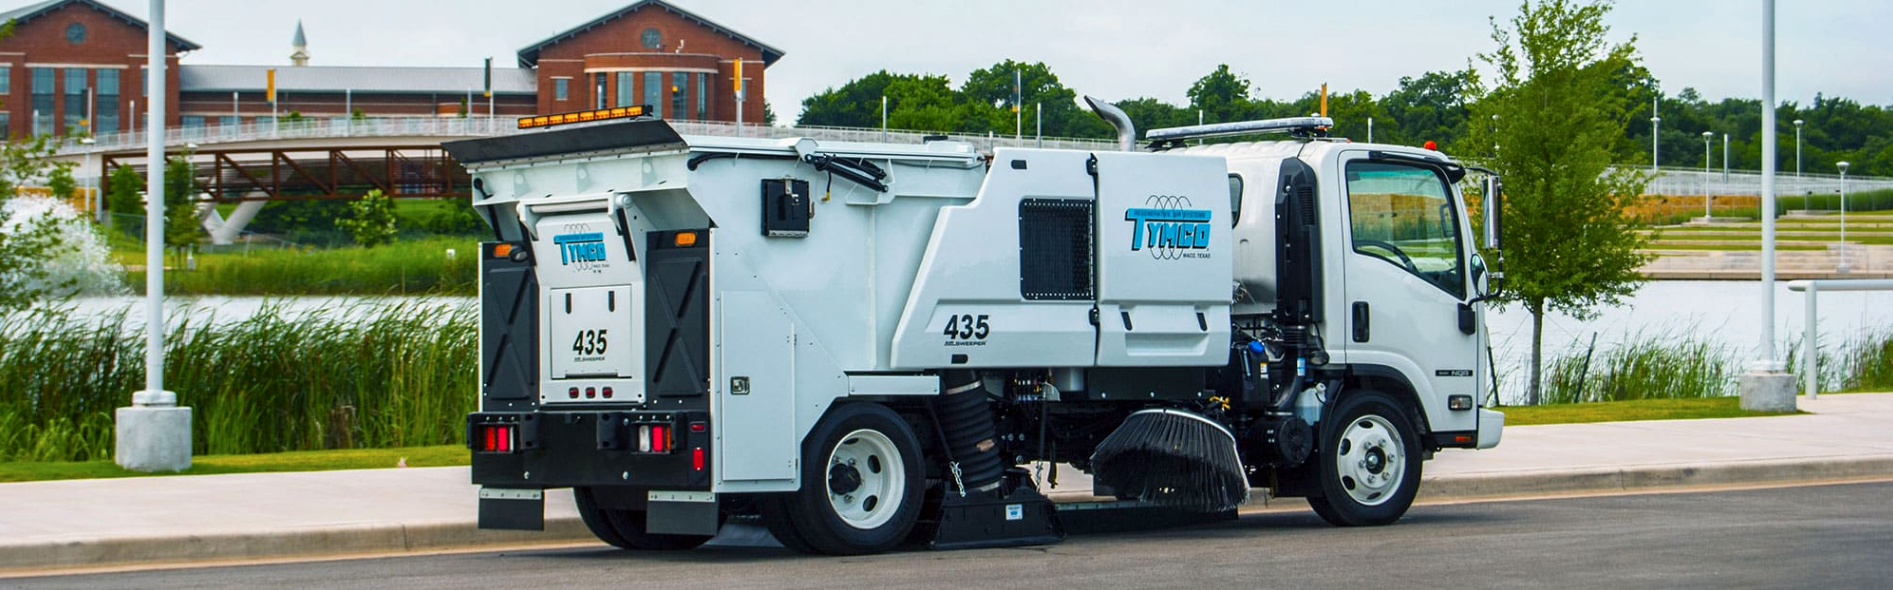 435 Tymco Industrial Sweeper